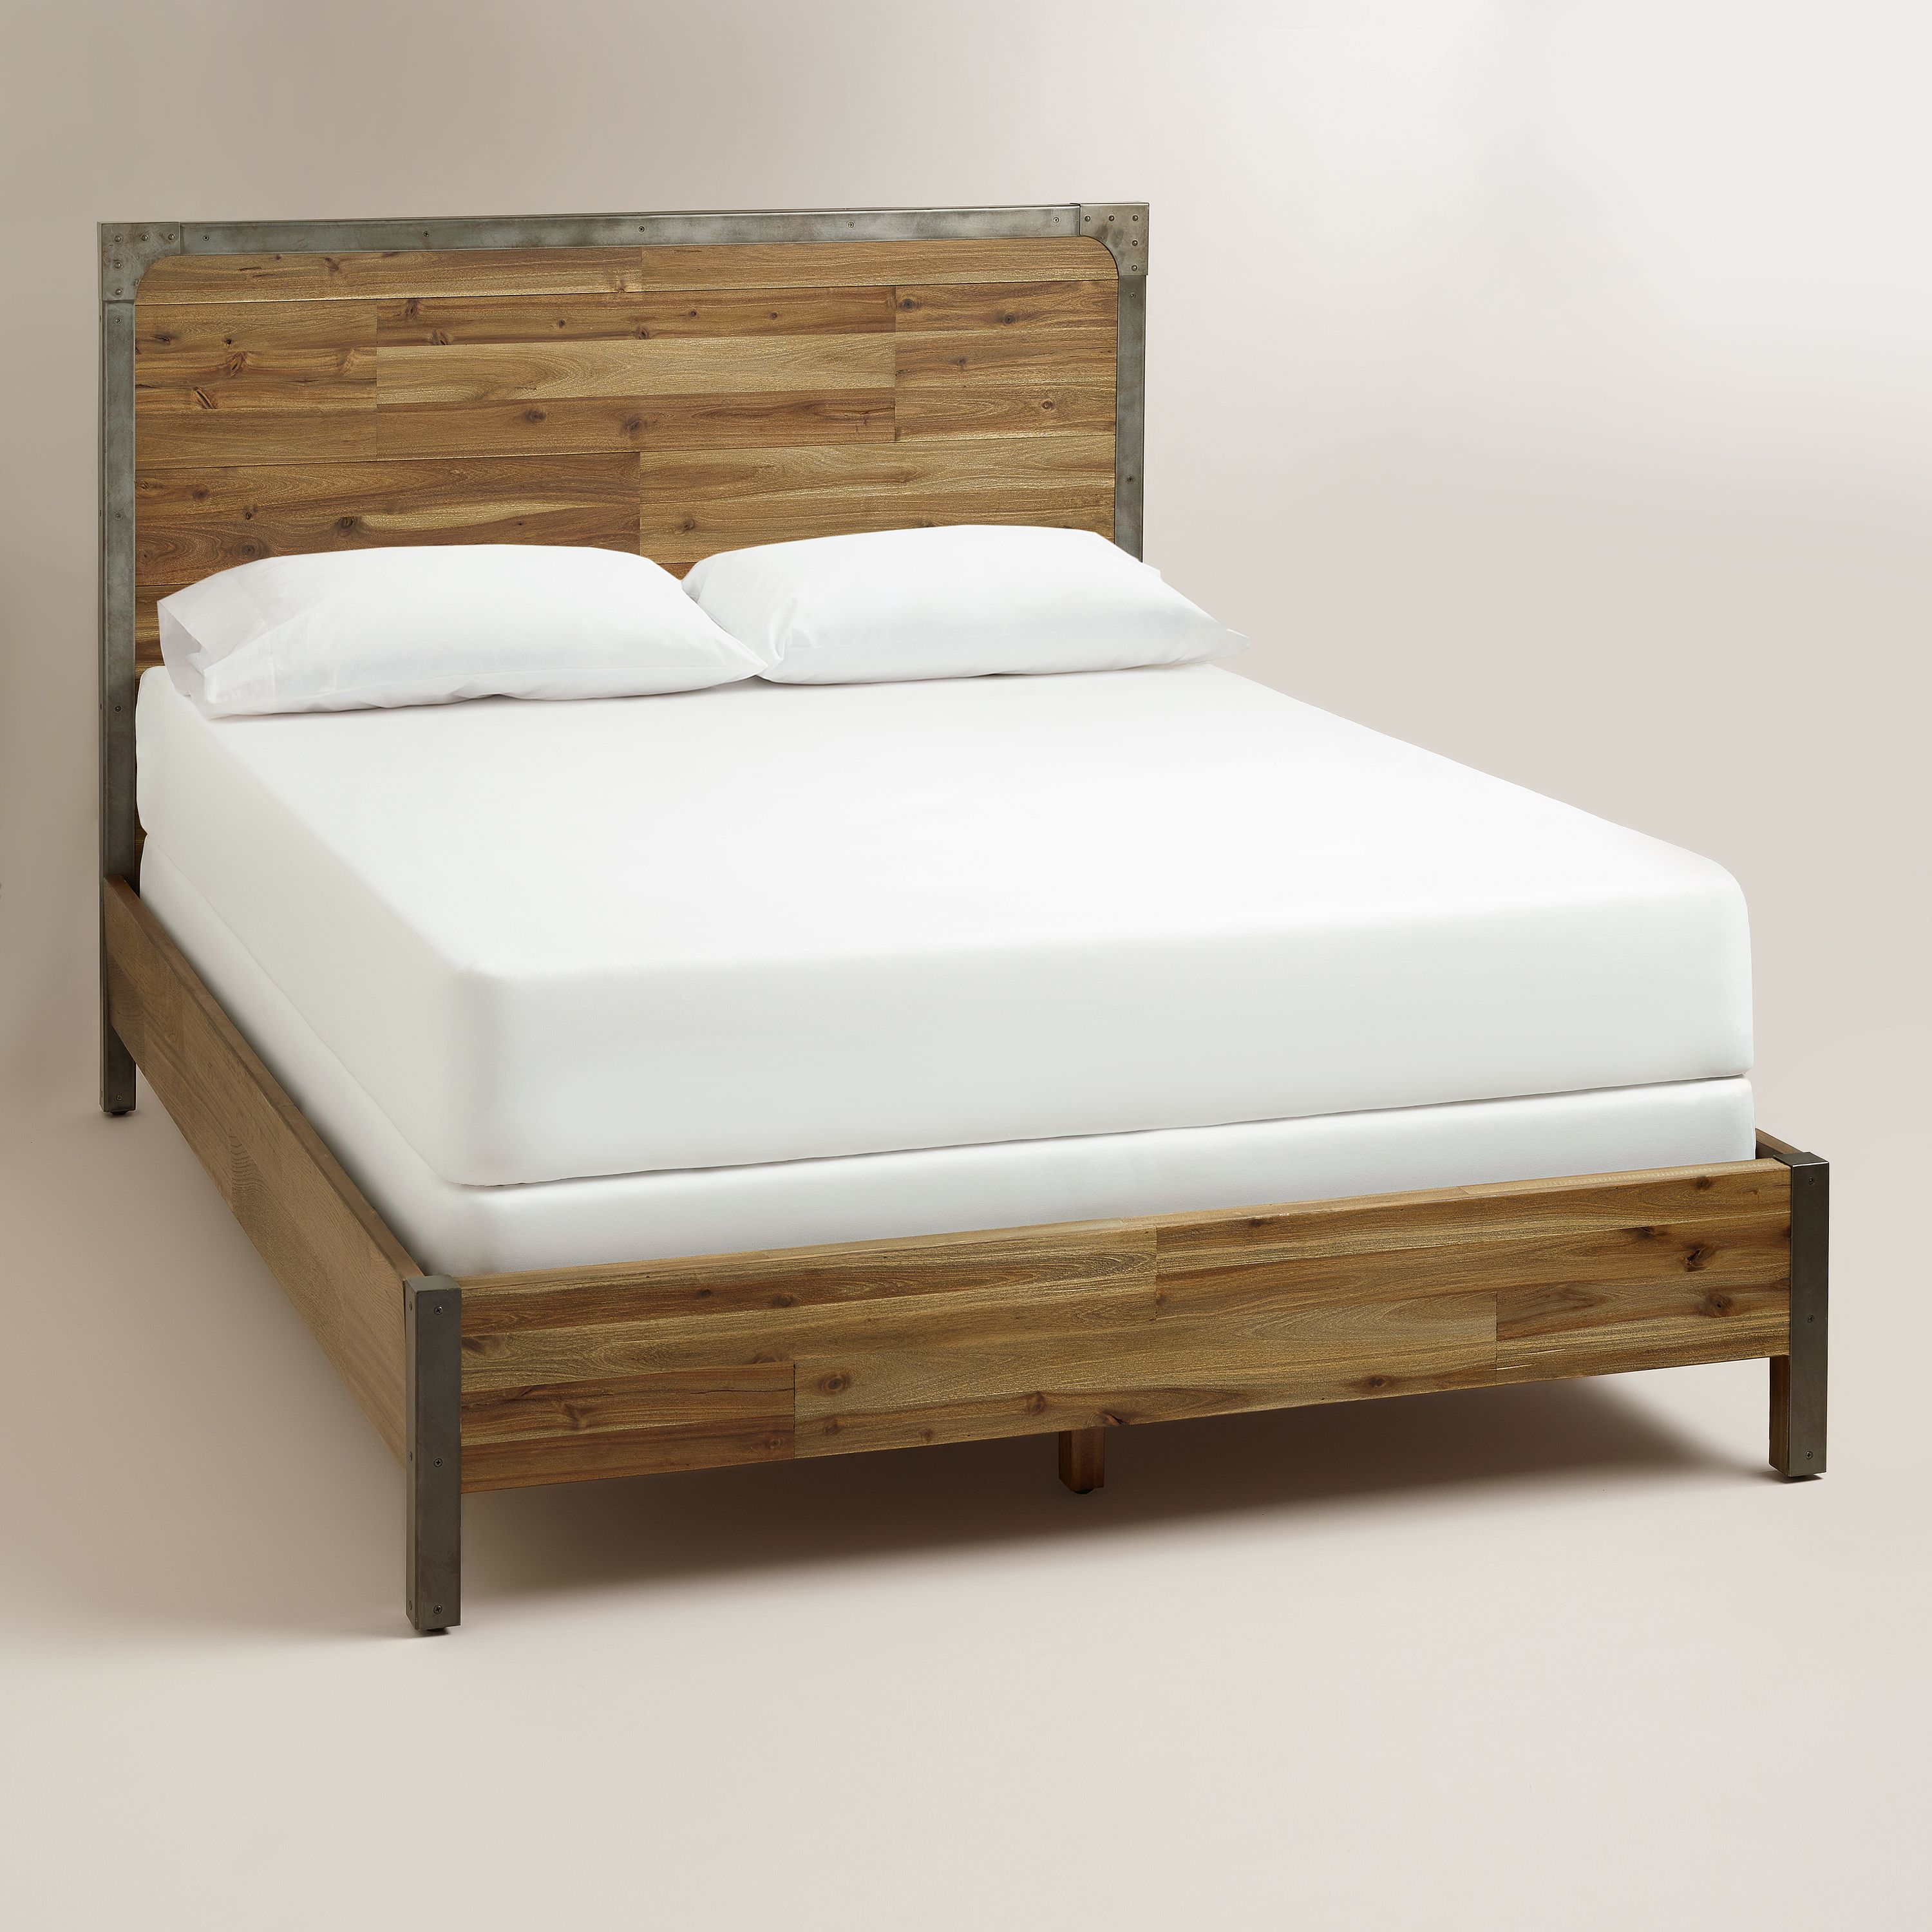 Pictures Of Beds Wood And Metal Aiden Bed  Metal Accents Rustic Wood And Nightstands